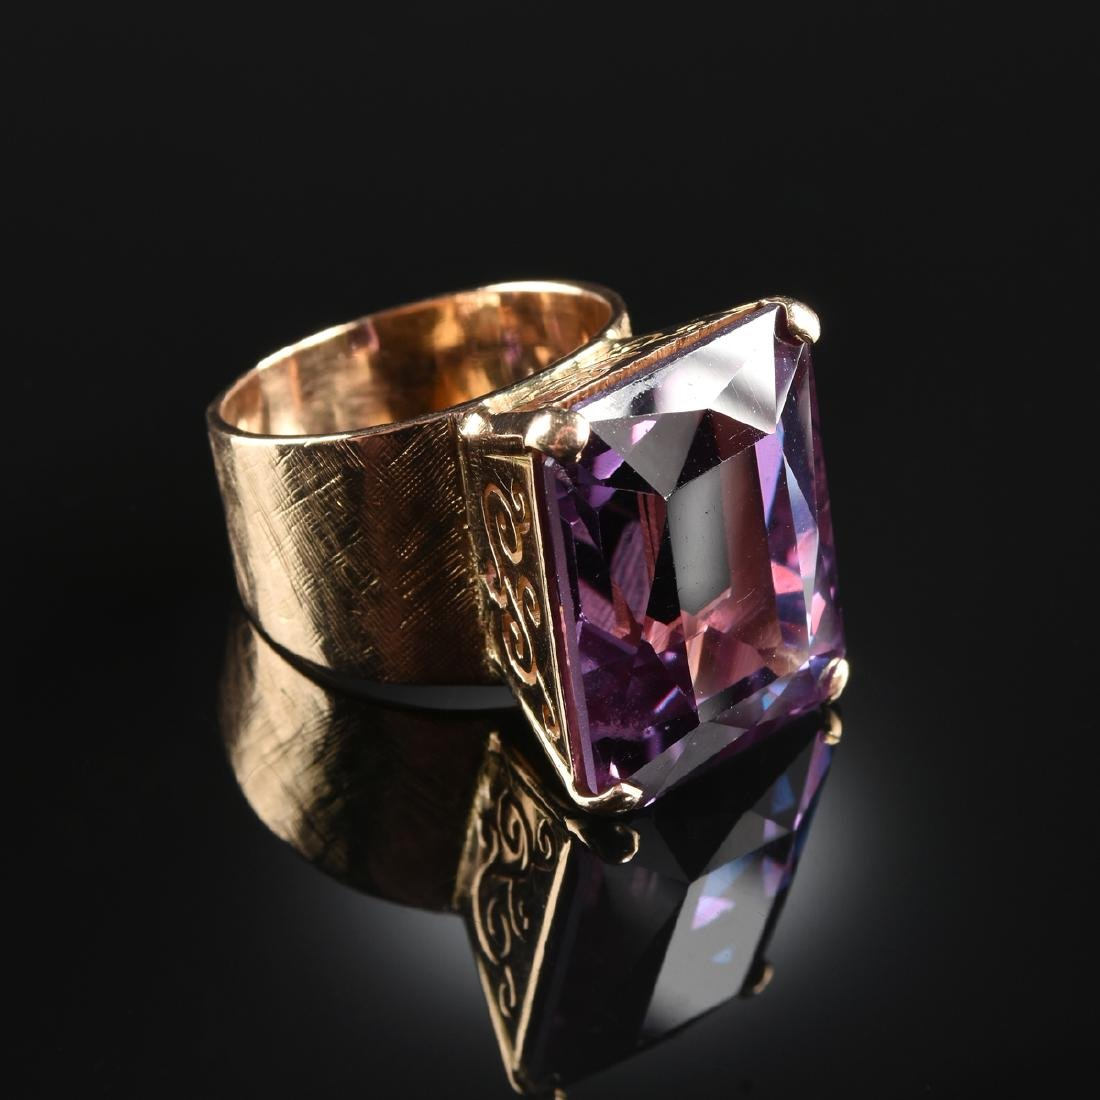 A 14K YELLOW GOLD AND HYDRO THERMAL ALEXANDRITE RING,